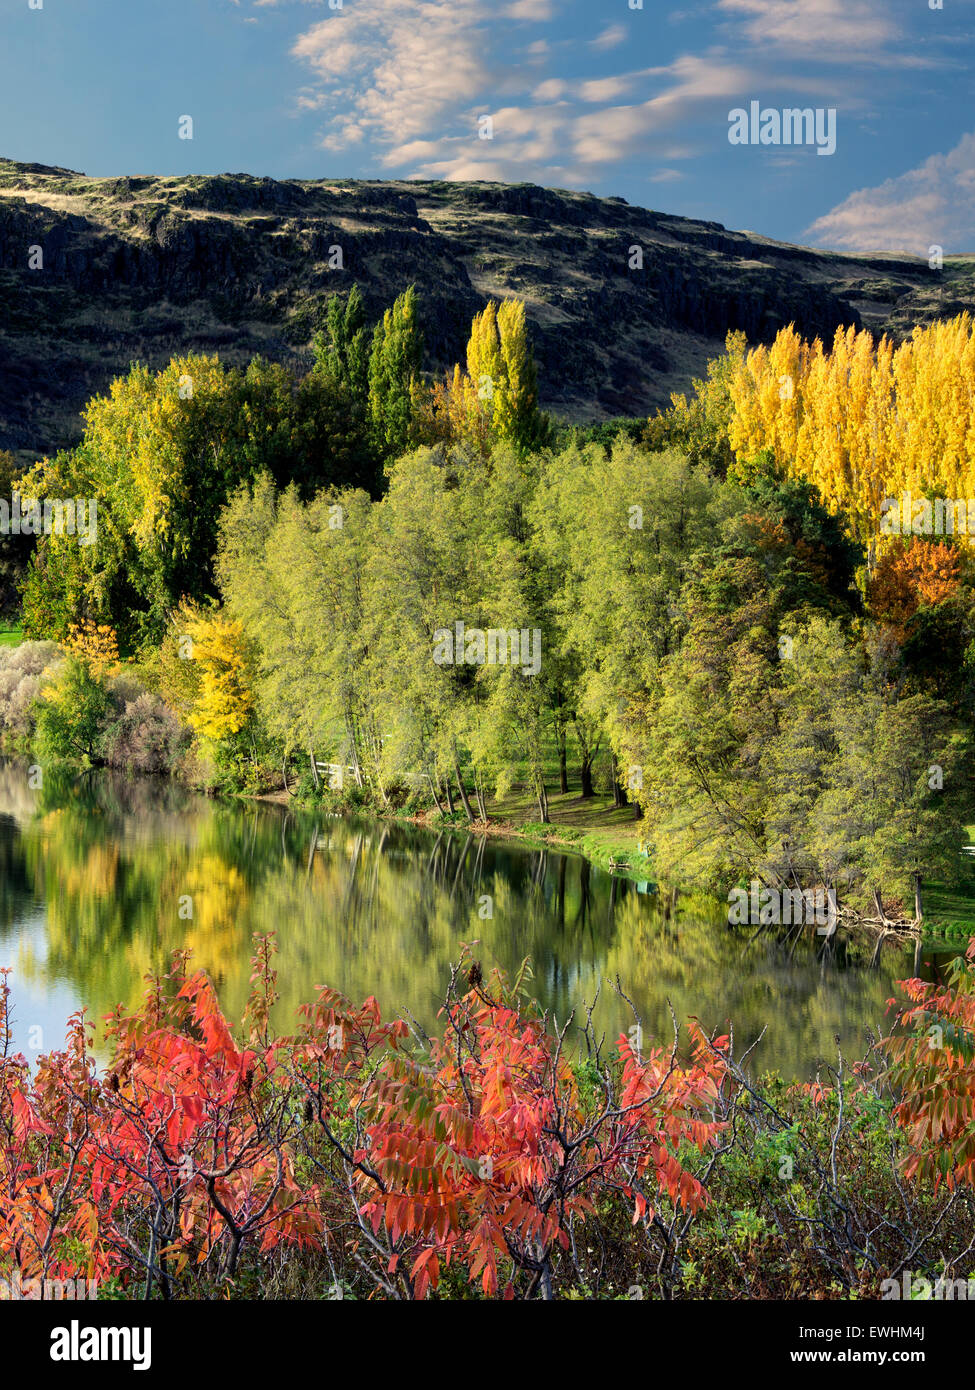 Fall color at Horesthief Lake State Park, Washington. Columbia River Gorge National Scenic Area - Stock Image